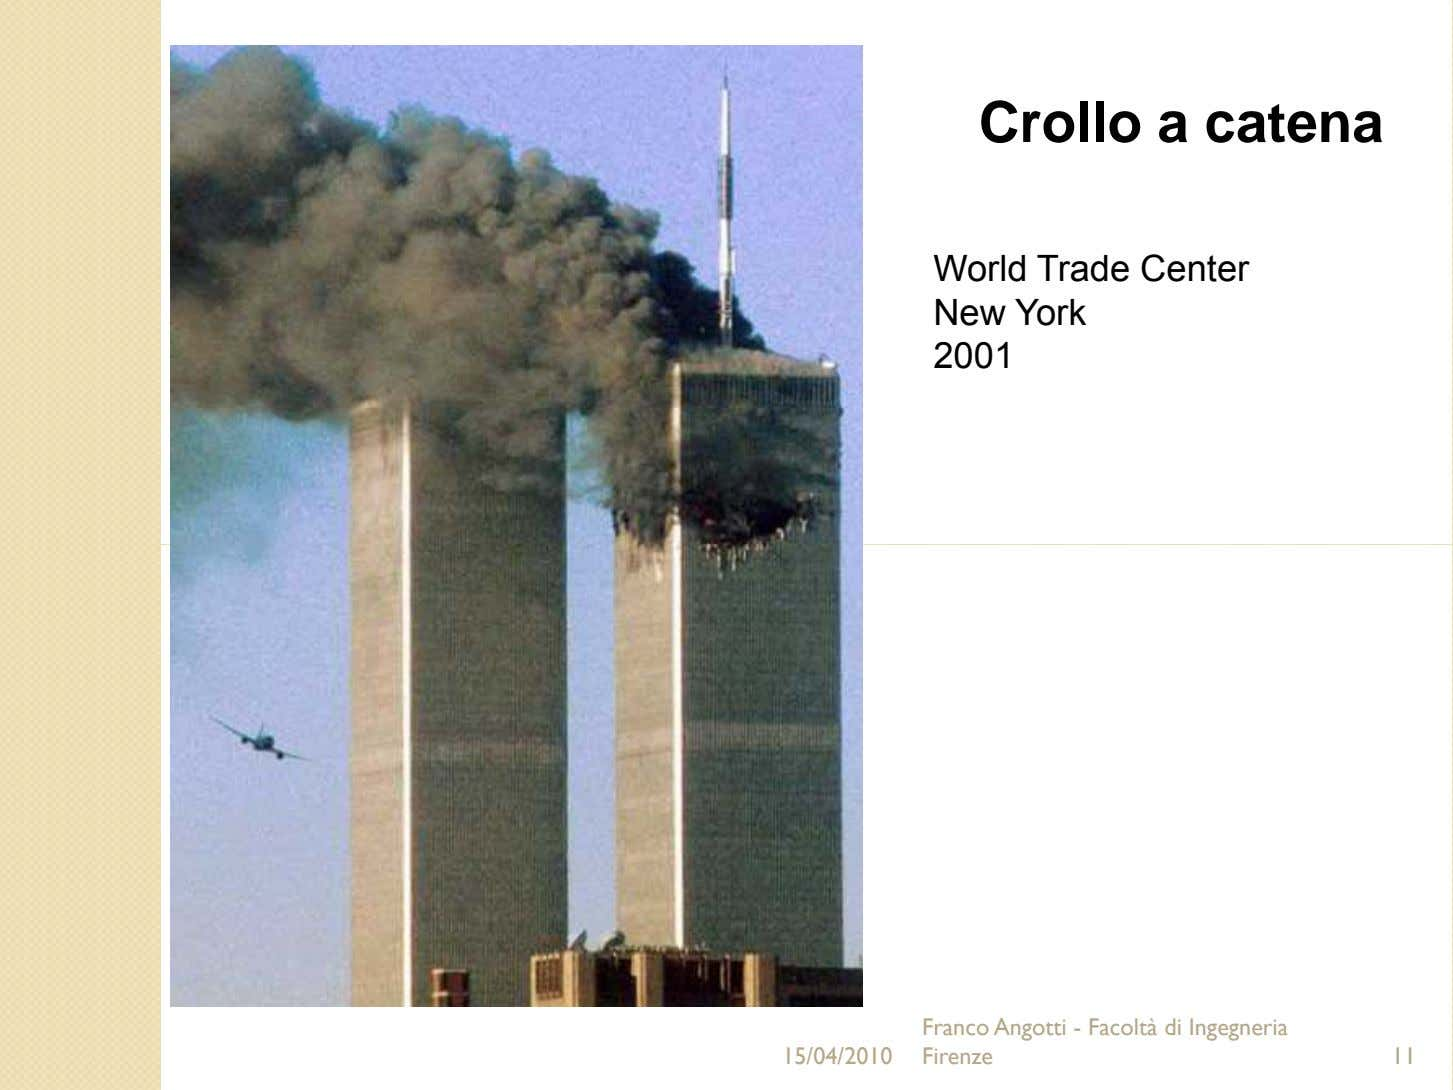 Crollo a catena World Trade Center New York 2001 15/04/2010 Franco Angotti - Facoltà di